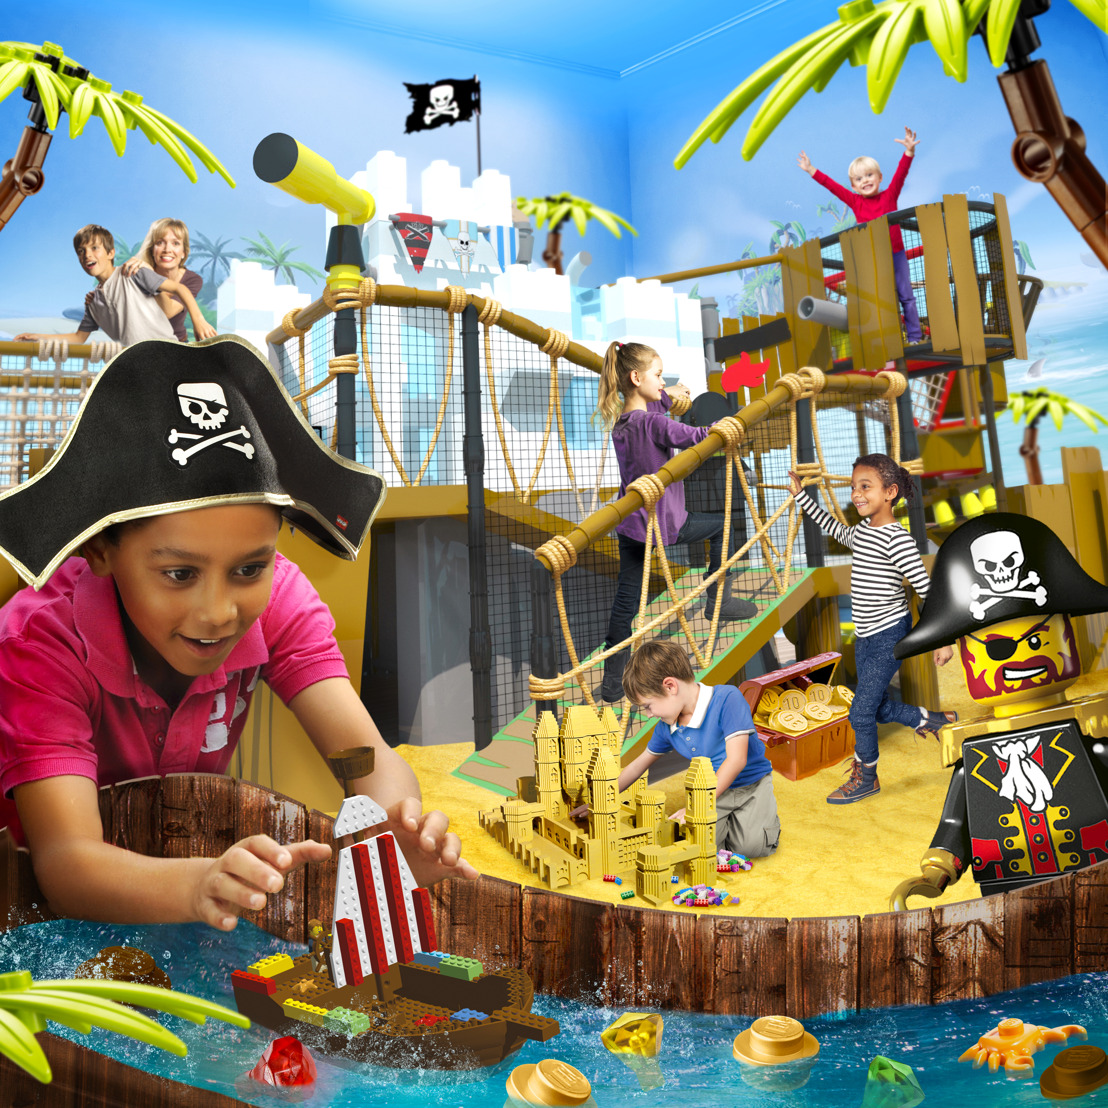 LEGOLAND® Discovery Center Atlanta to arghh-fer special deals for International Talk Like a Pirate Day on September 19